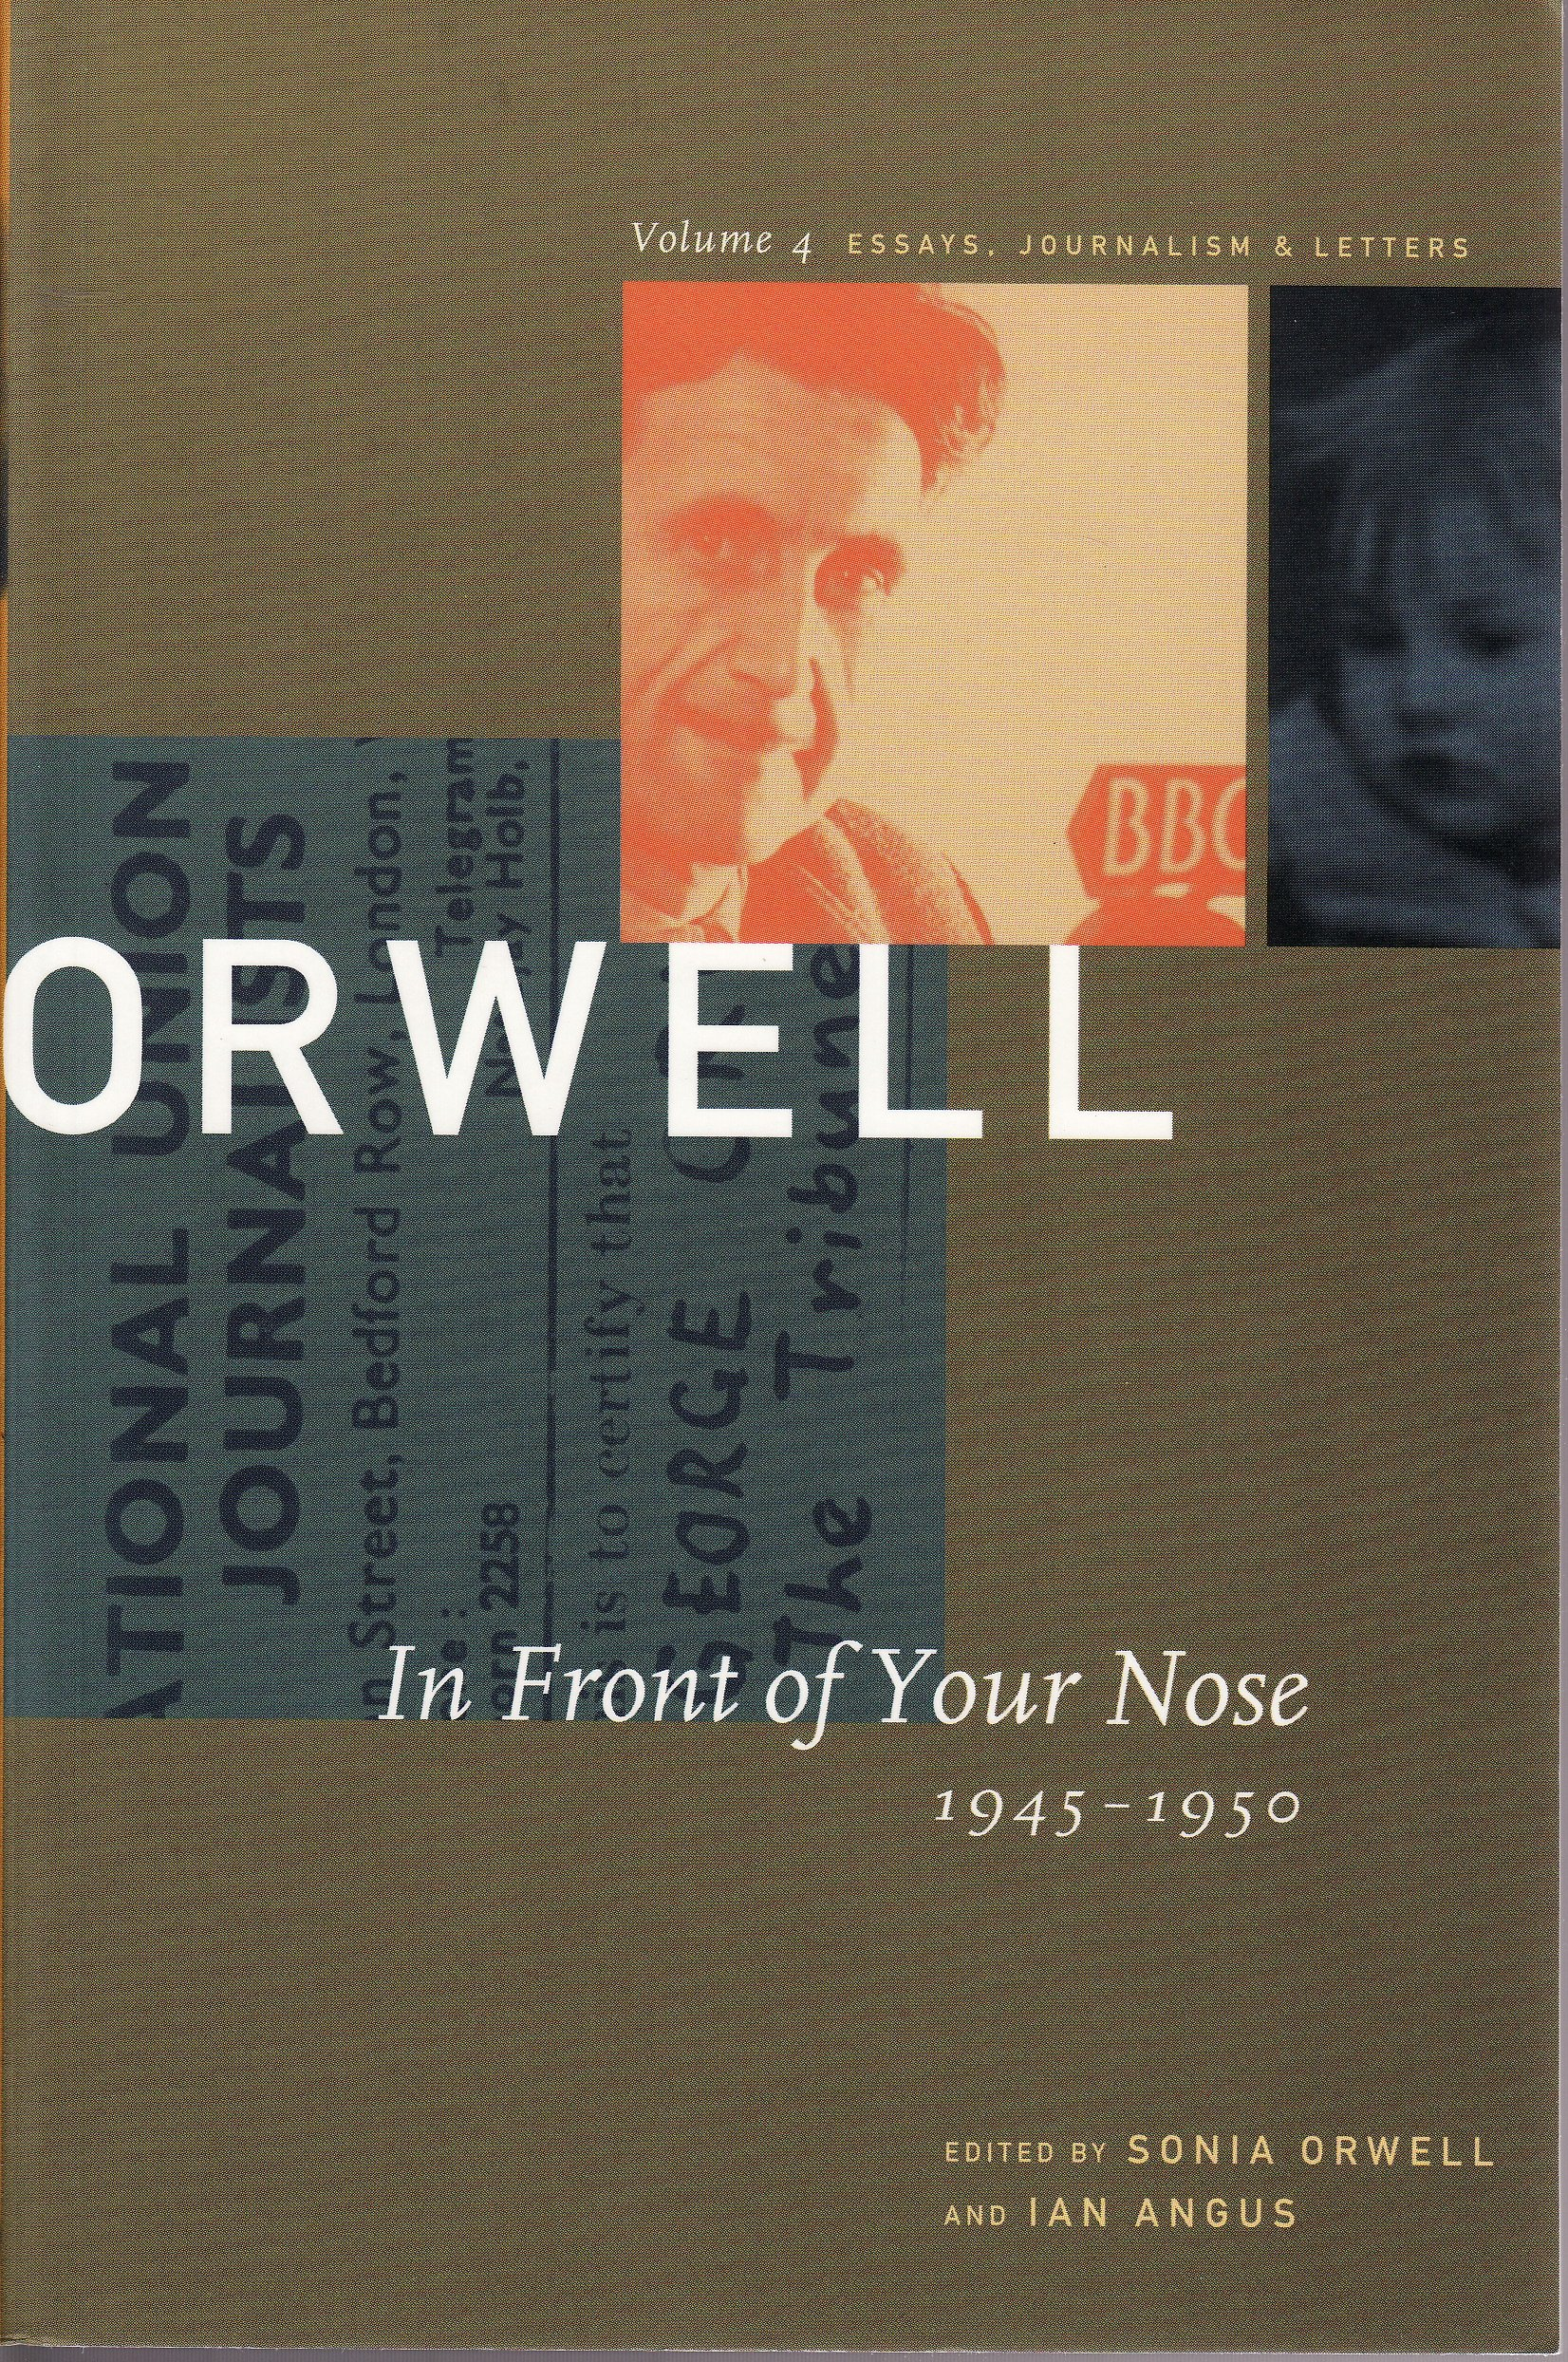 george orwell the collected essays journalism and letters vol george orwell the collected essays journalism and letters vol 1 an age like this 1920 1940 vol 2 my country right or left 1940 1943 vol